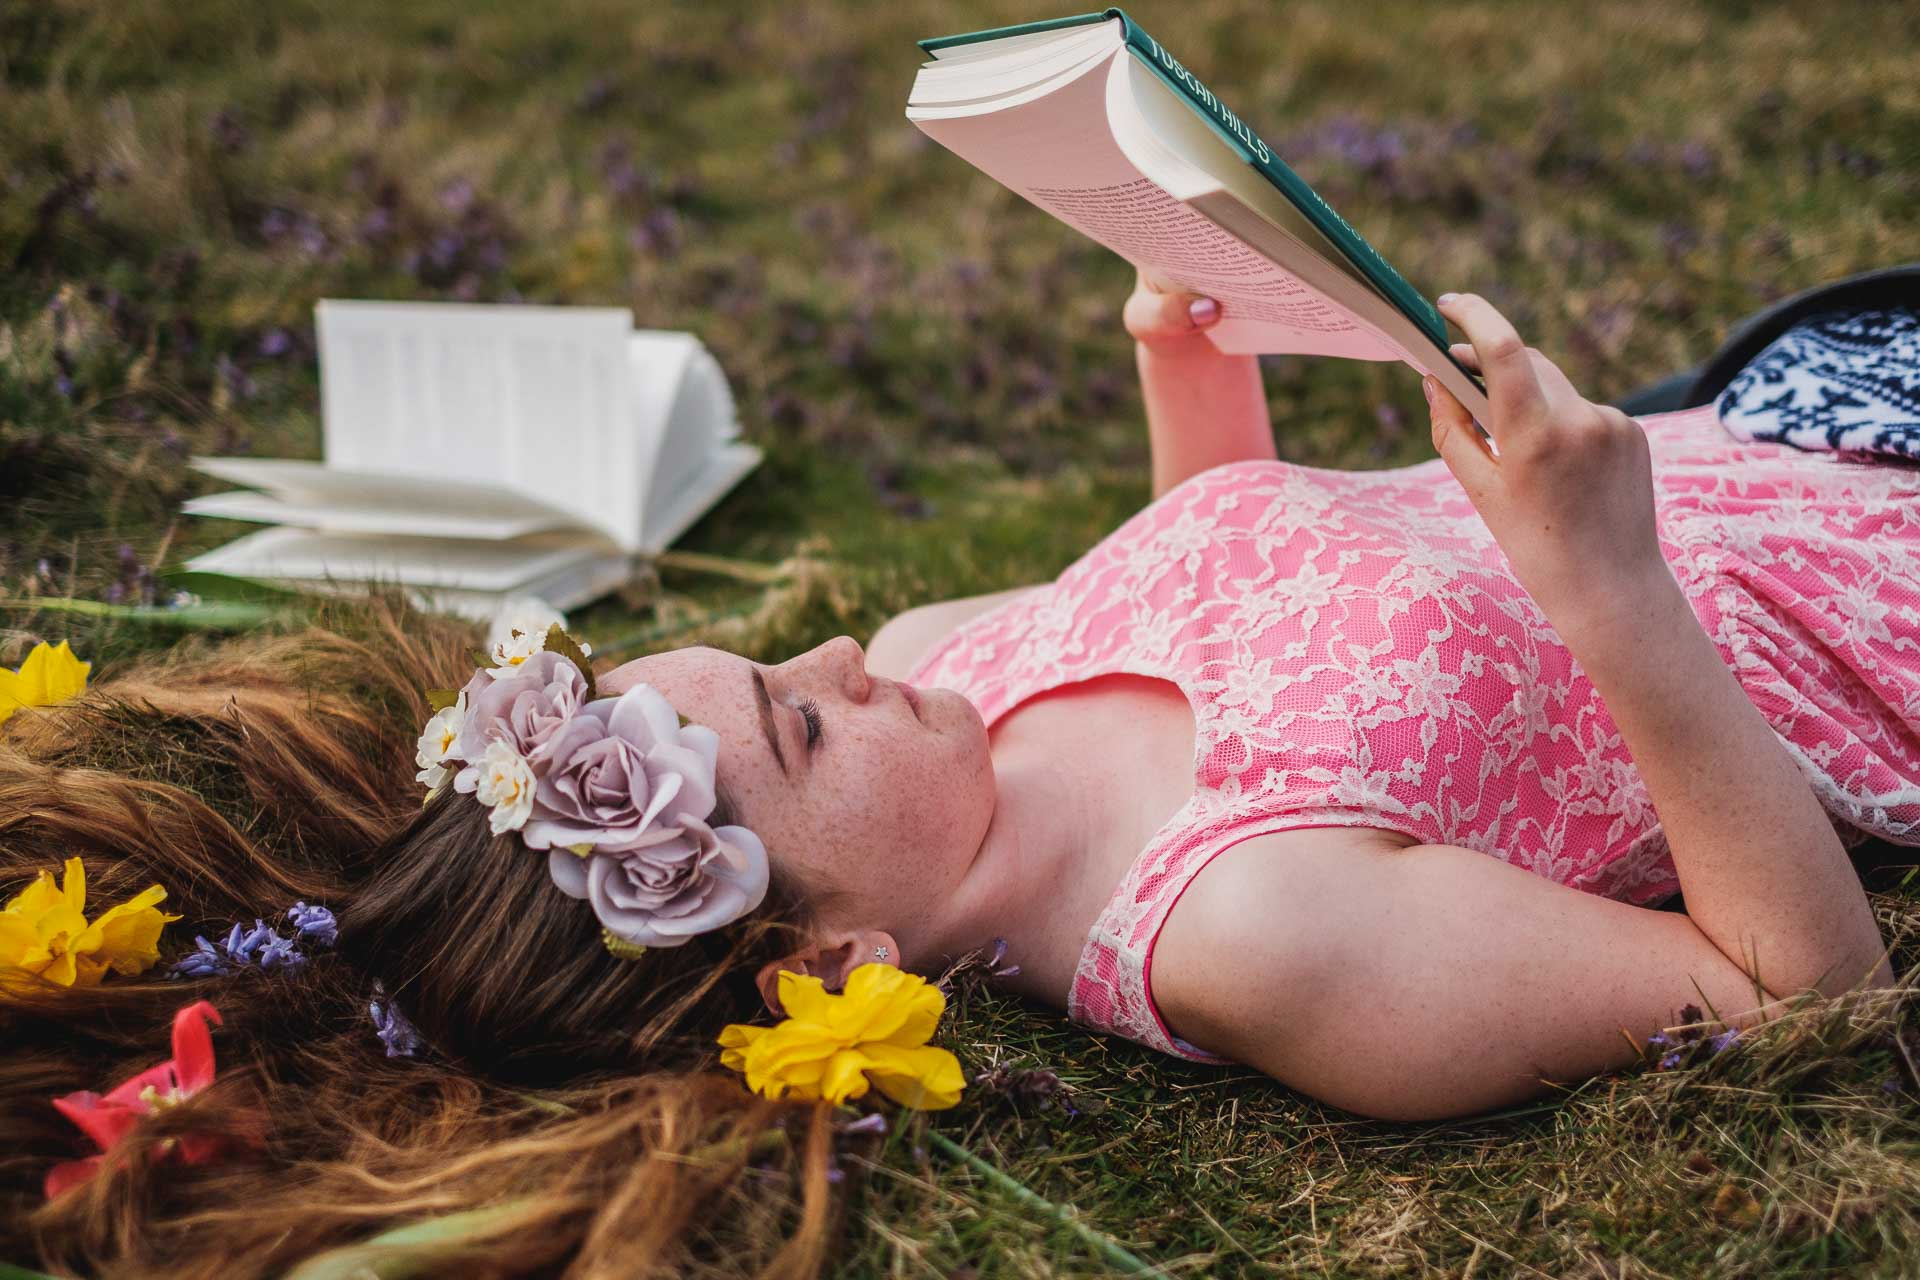 Girl lying on grass reading book